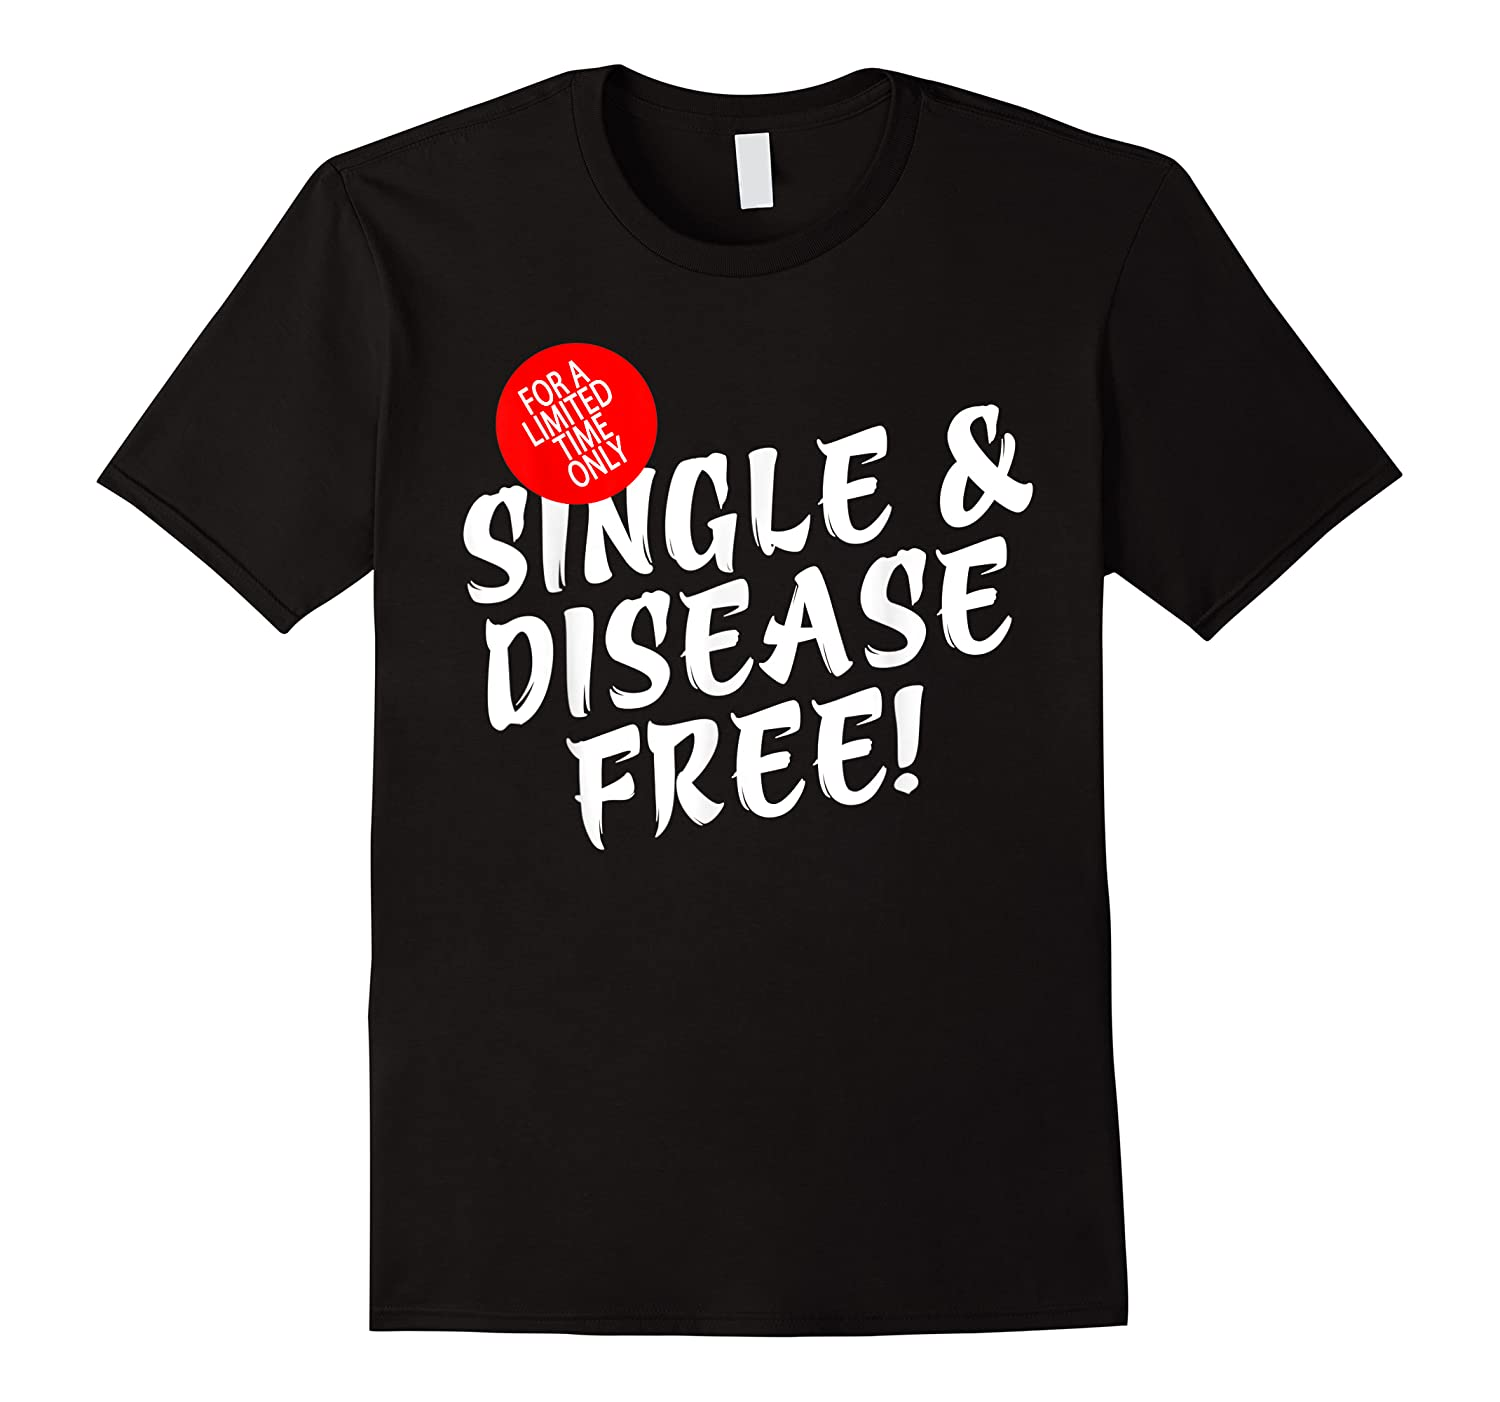 For A Limited Time Only Single Gift Disease Free Tshirt